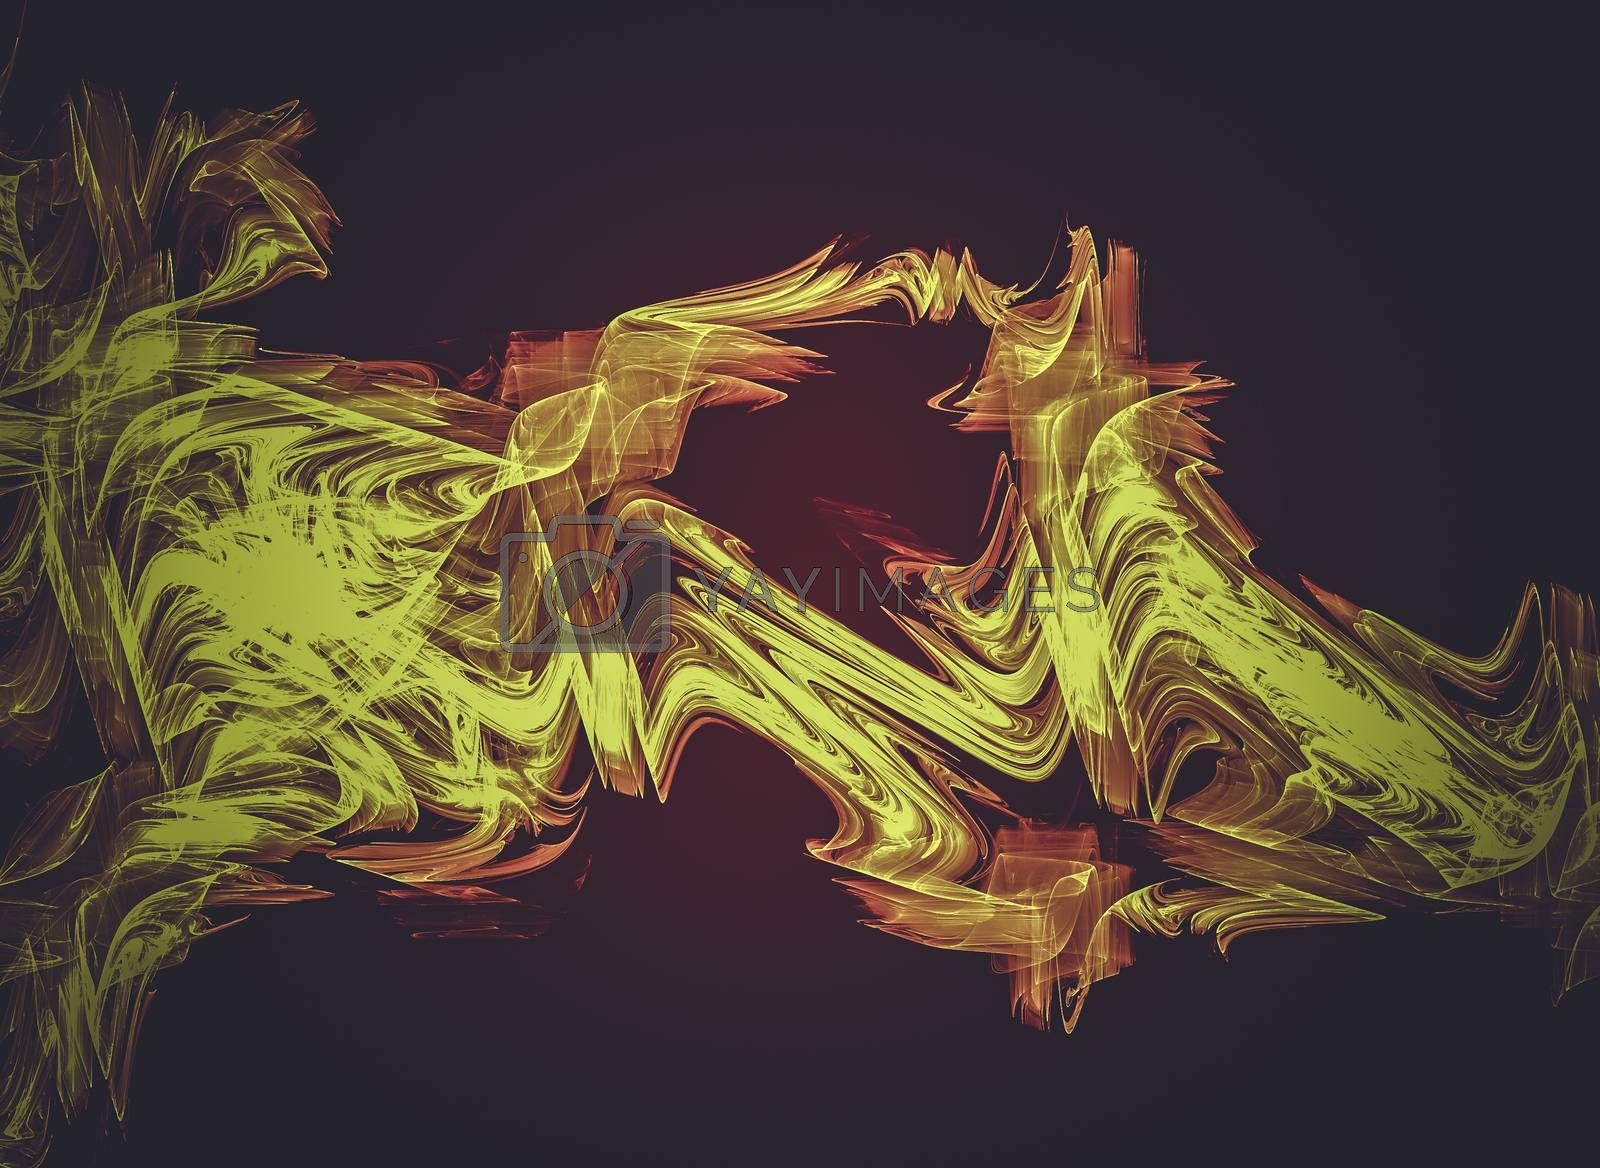 Fire , Creative design background, fractal styles with color des by FernandoCortes